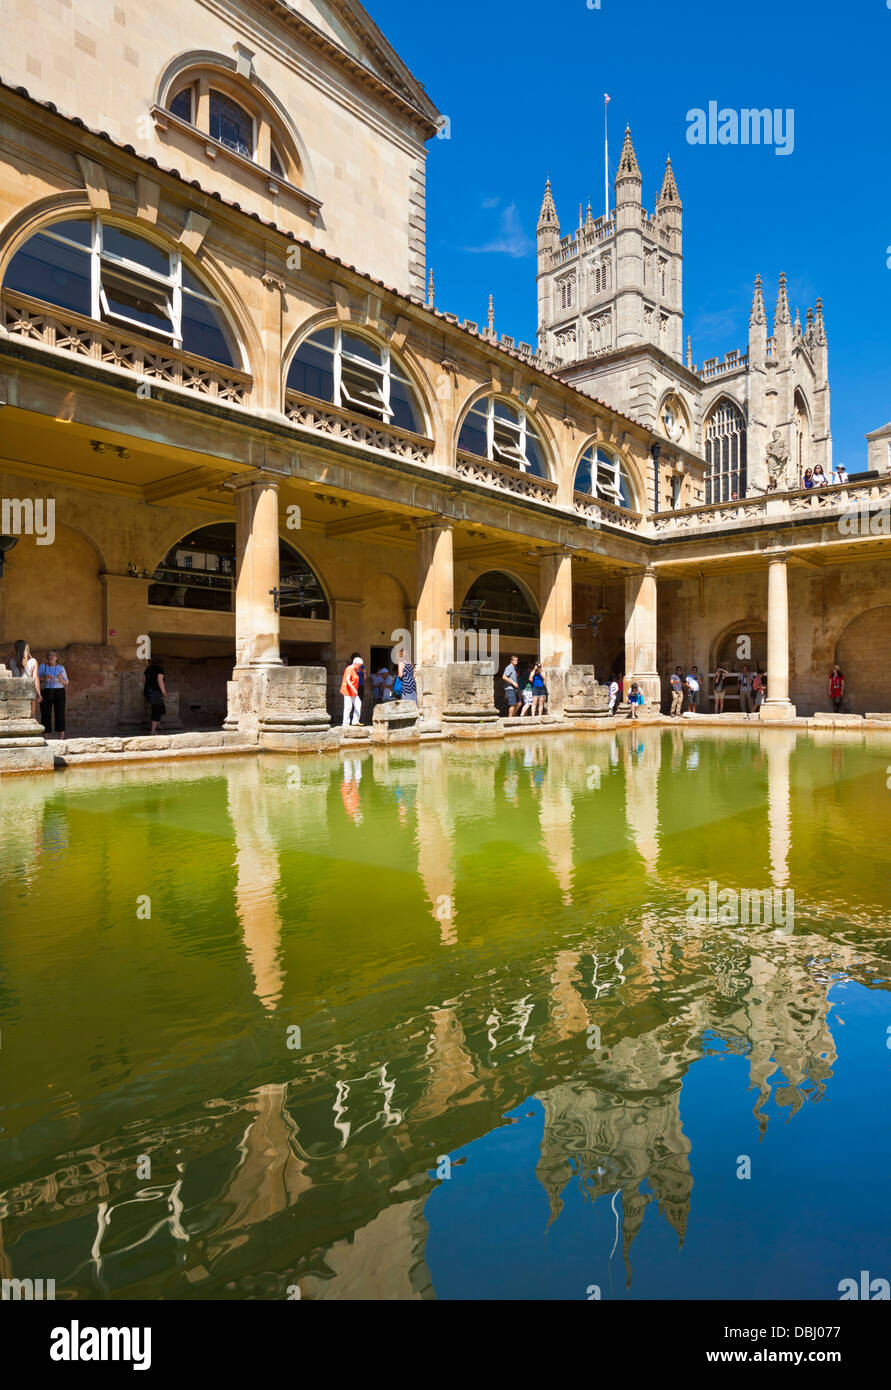 The Roman Baths, the great bath, the only hot springs in the UK, Bath city centre north east Somerset England UK - Stock Image